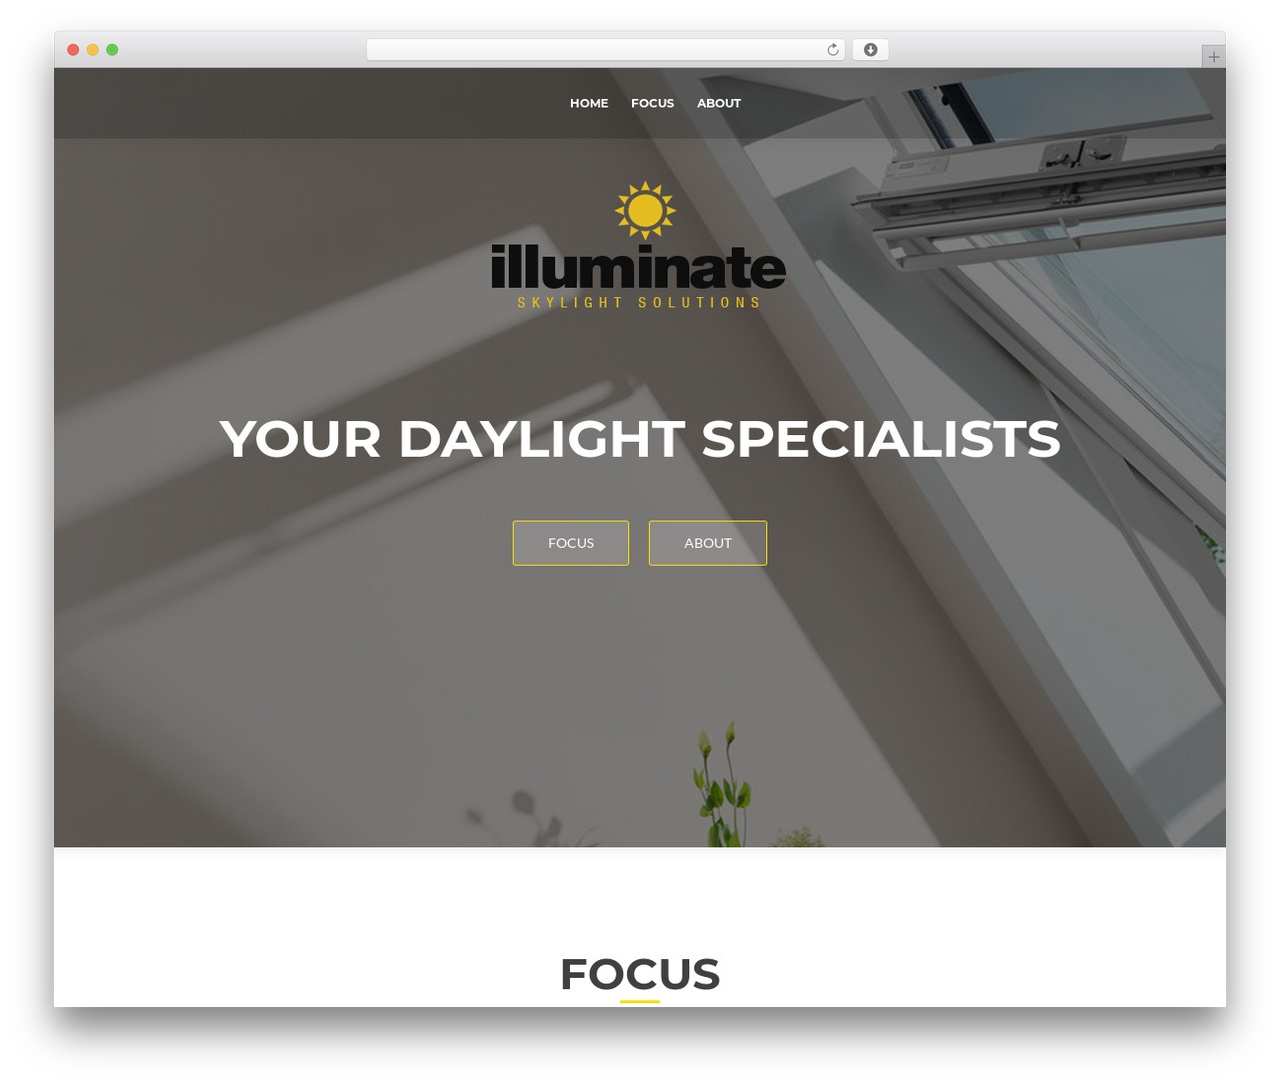 ResponsiveBoat WordPress theme free download - illuminateskylights.com